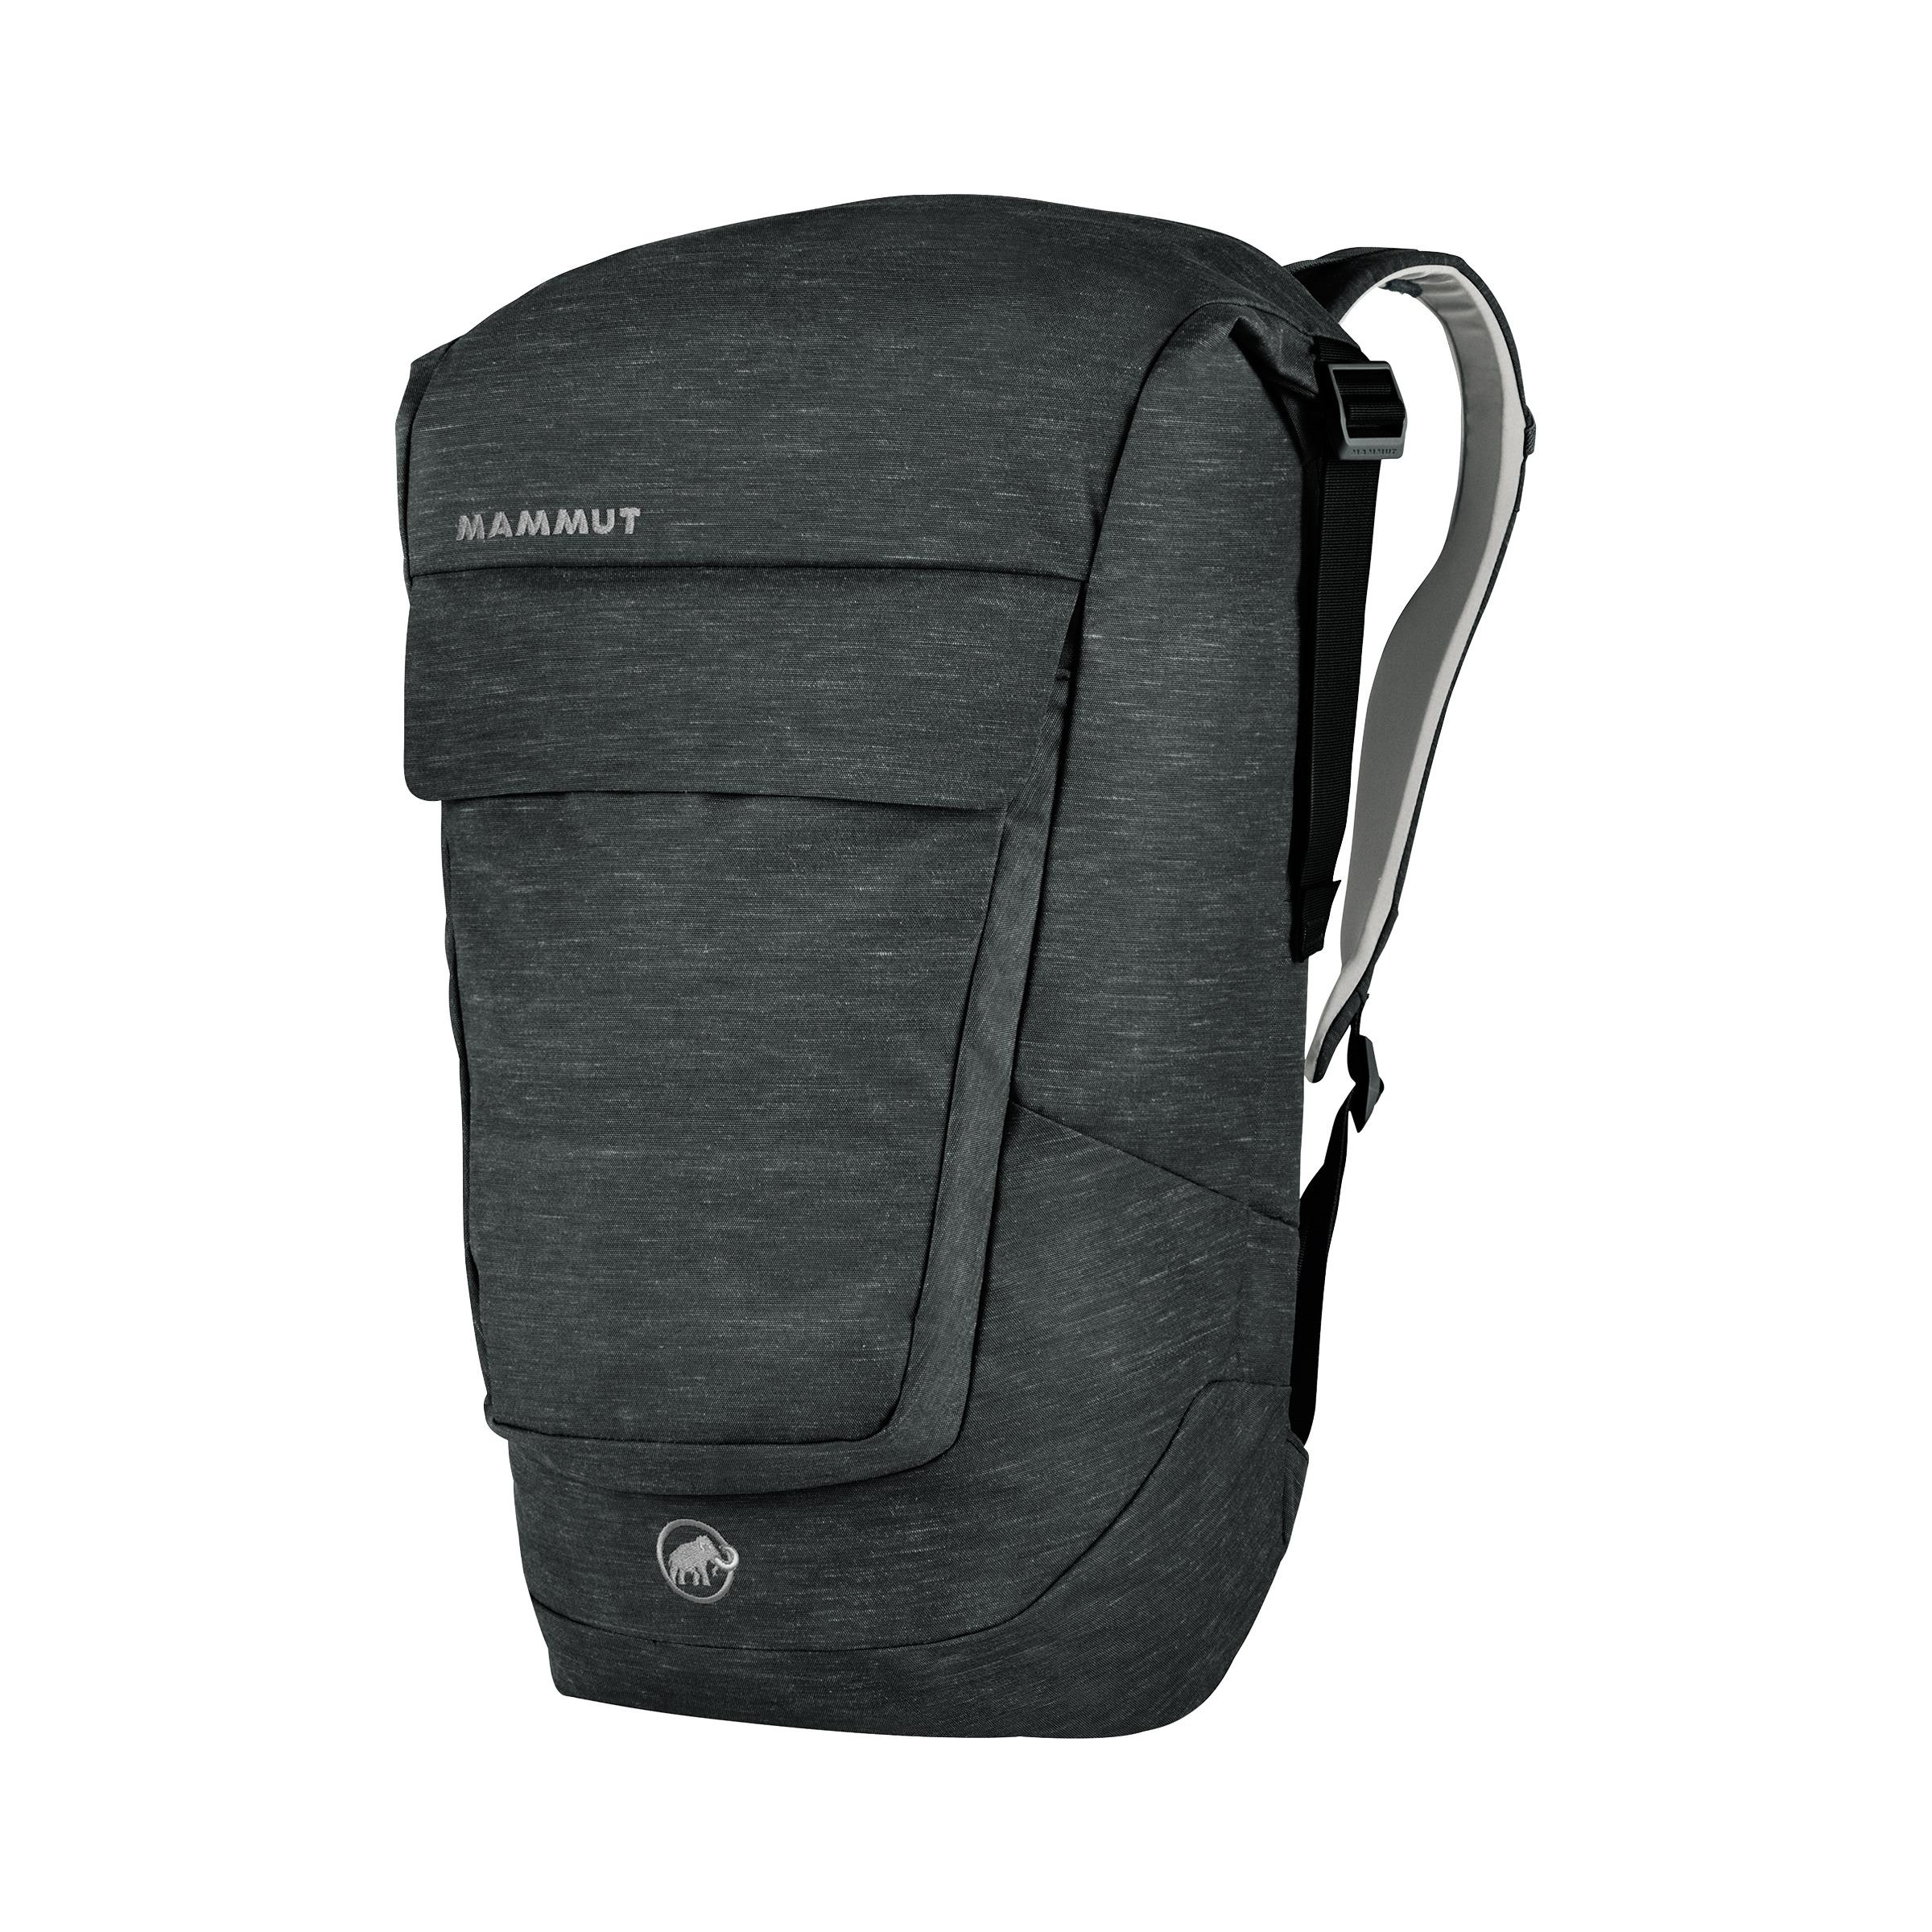 Mammut Xeron Courier 25l By Adventure 21.